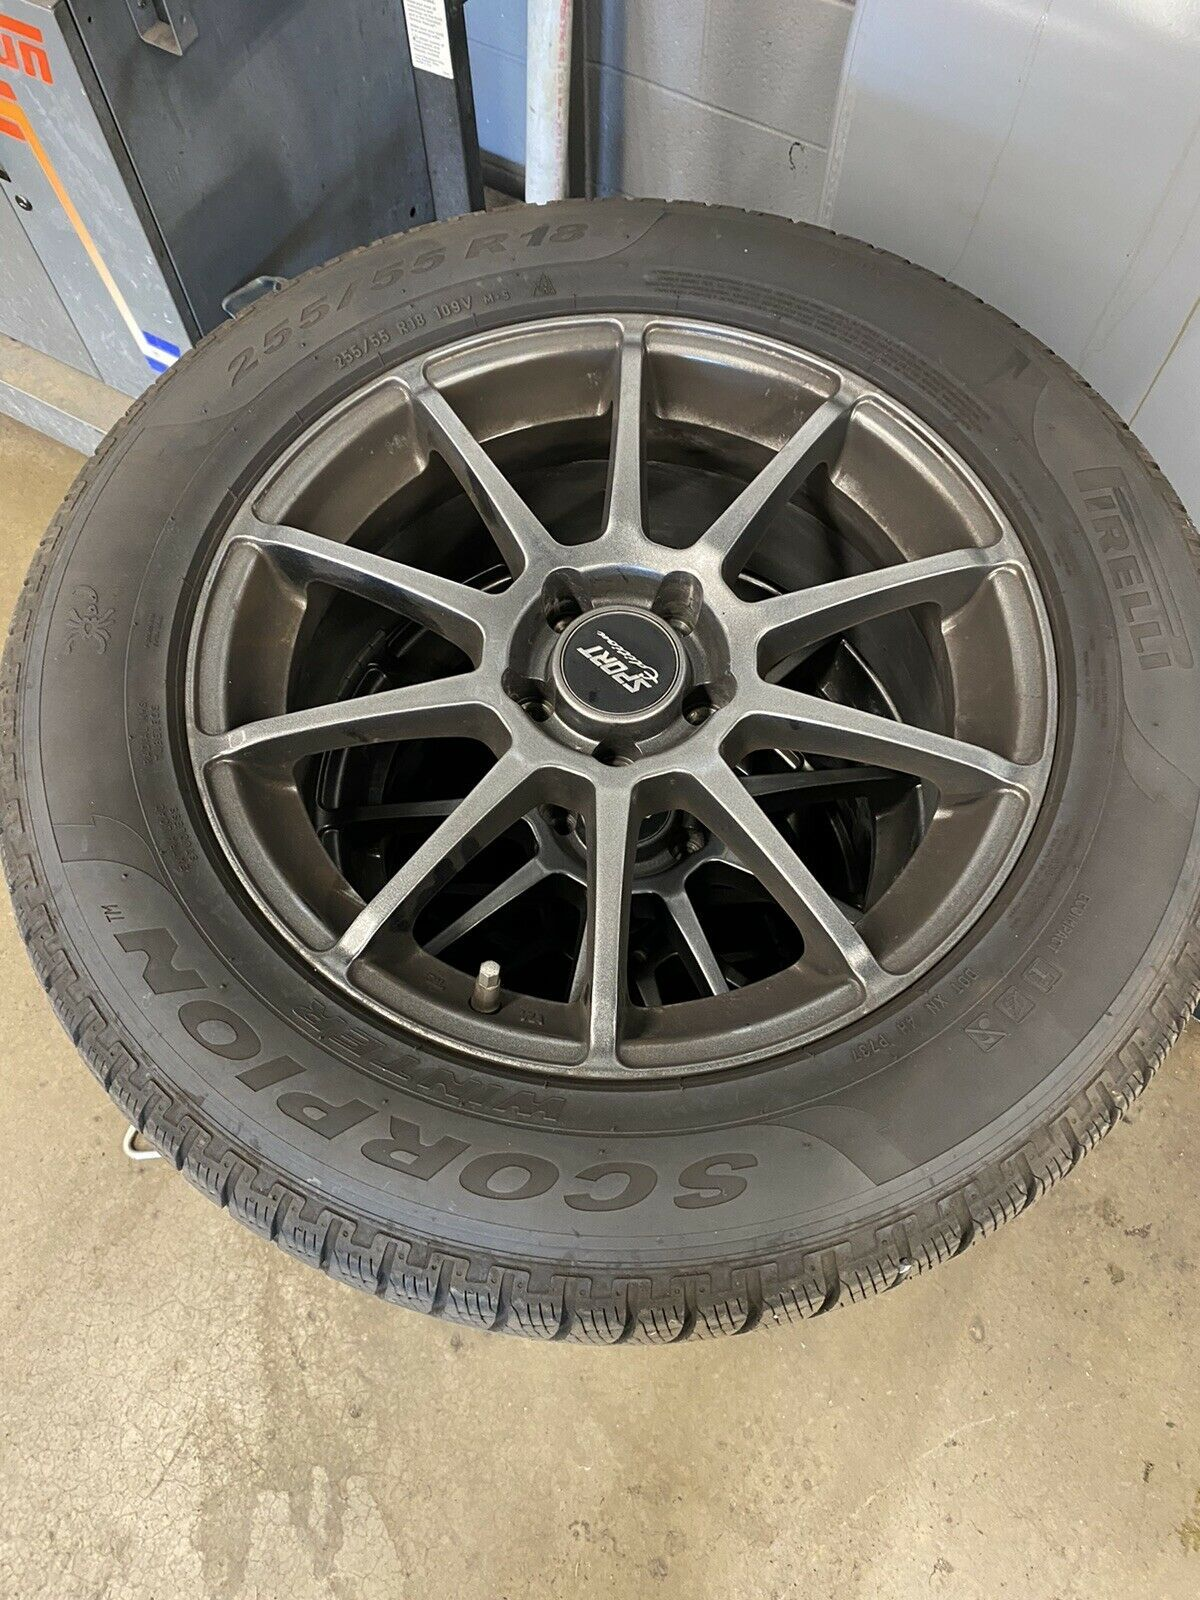 Audi Winter Wheels Wheel Winter Tyres Wheels And Tires